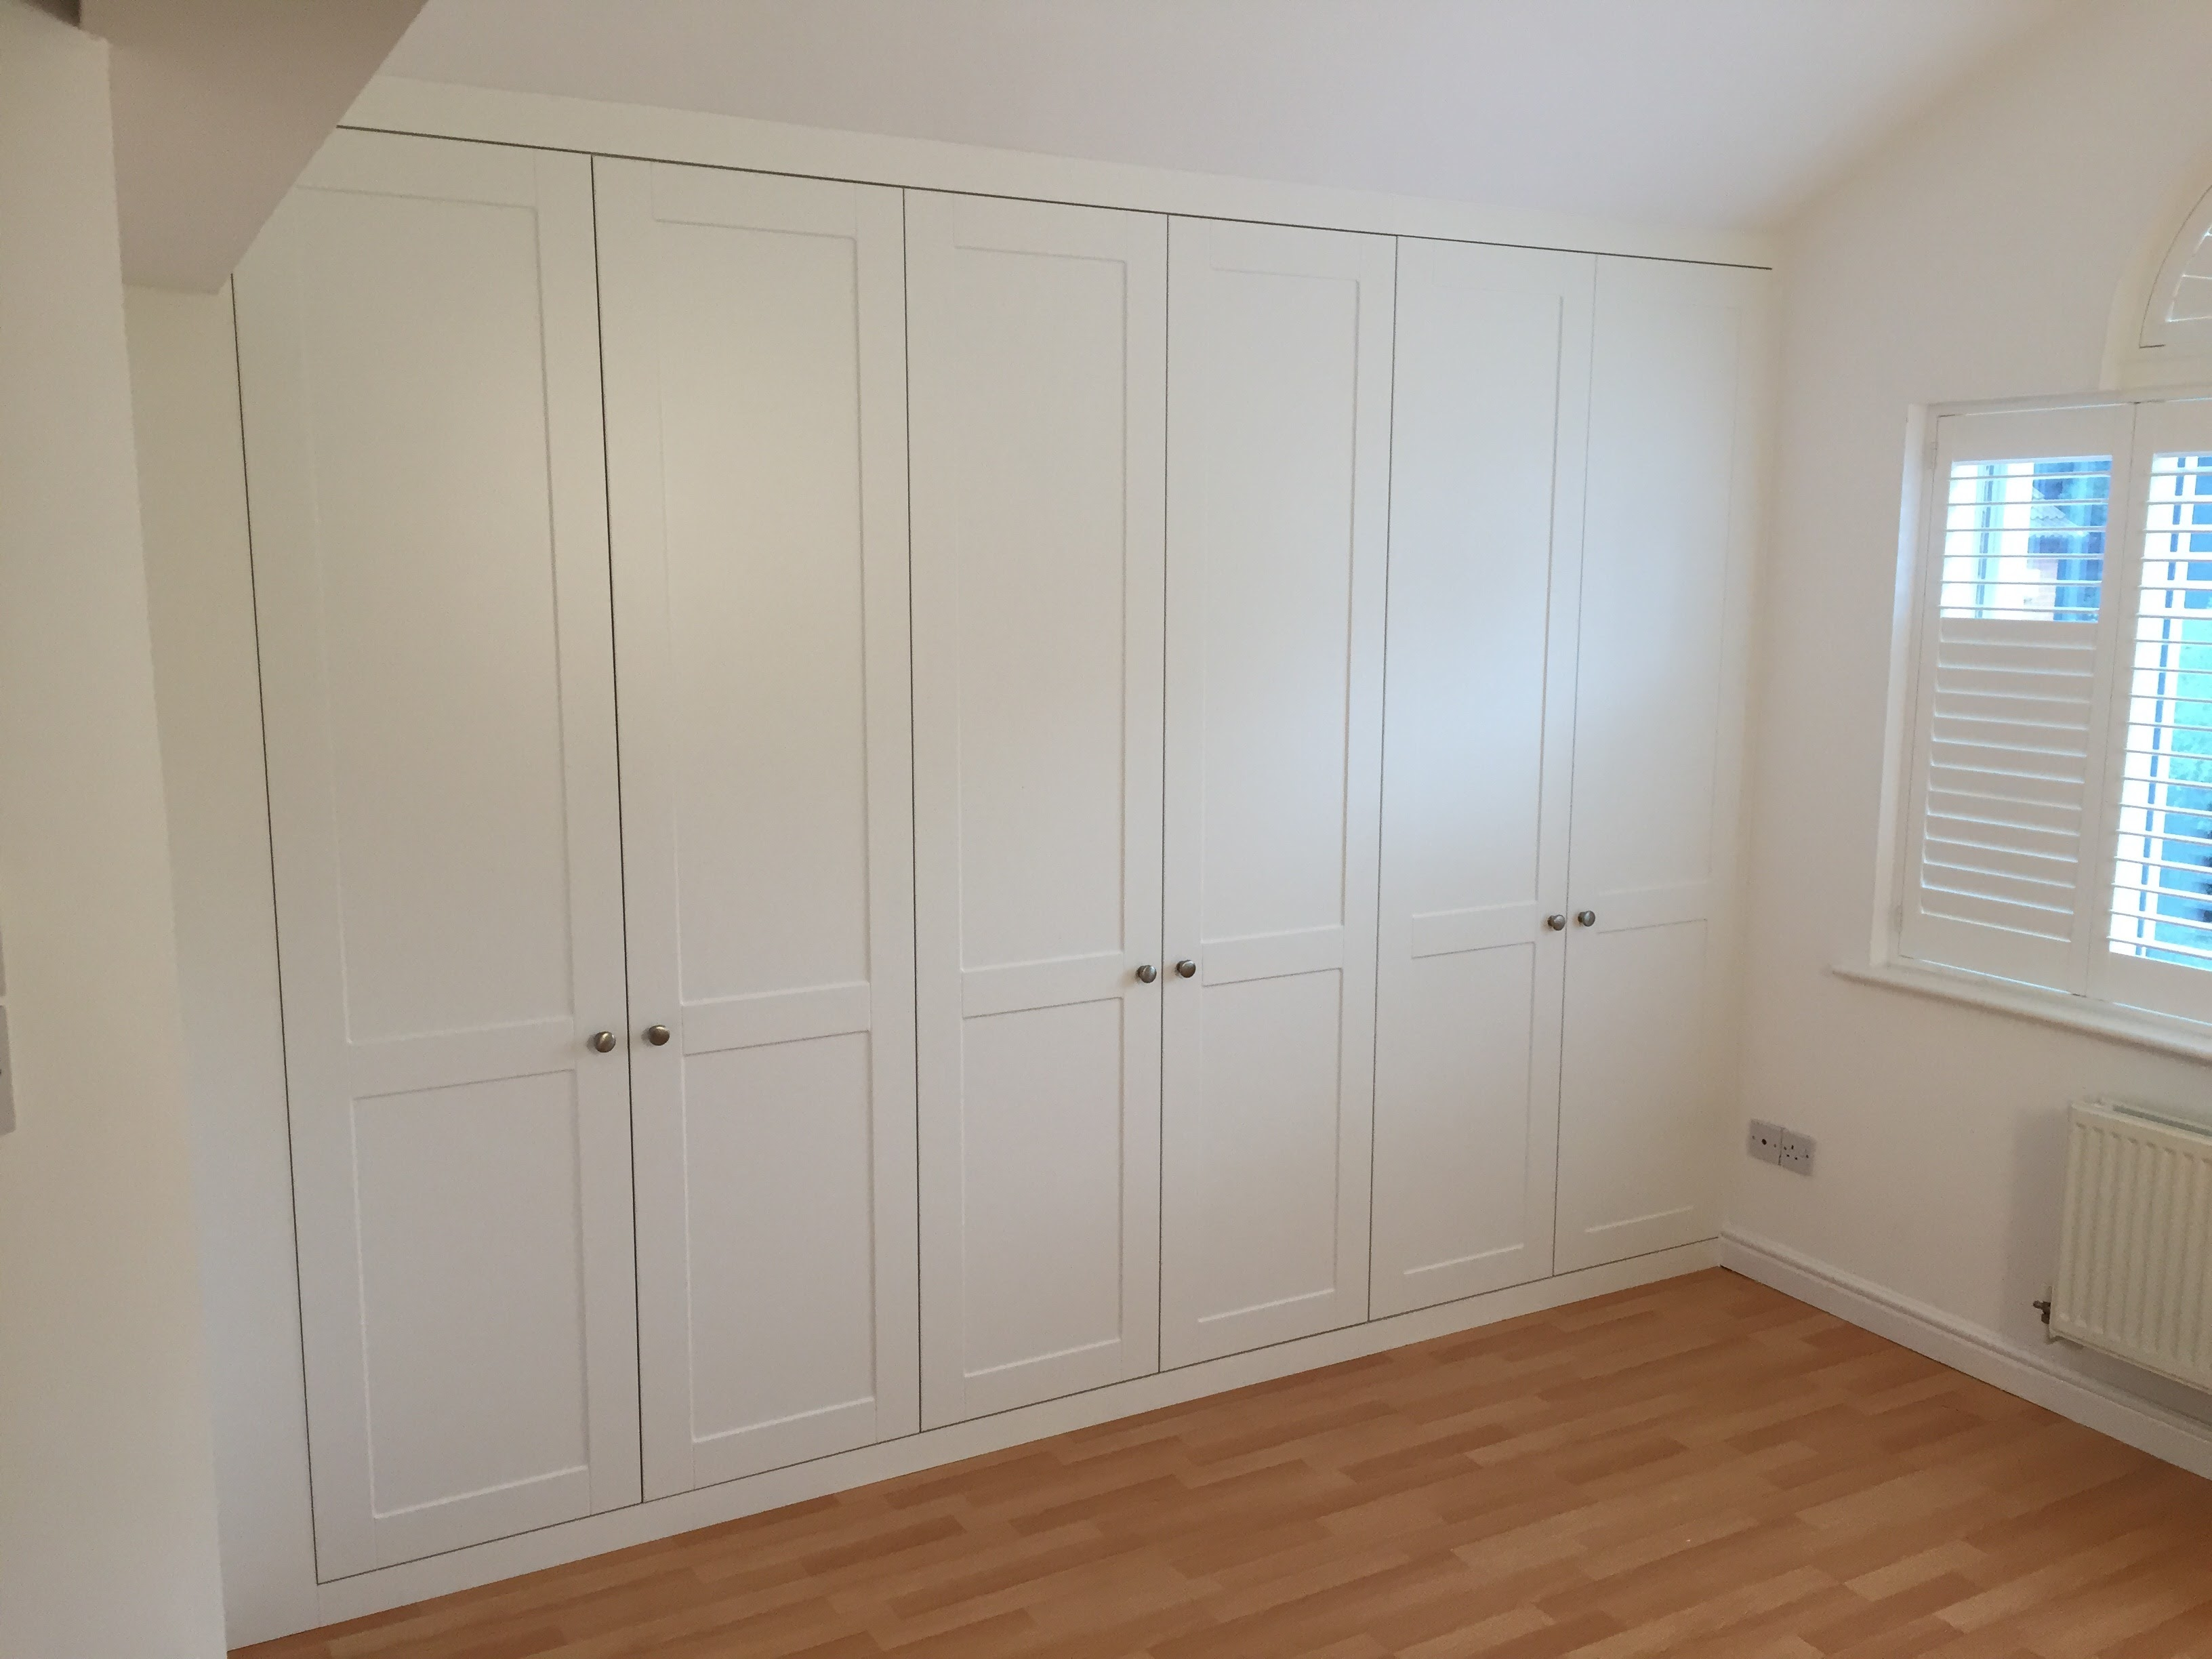 Wardrobes again